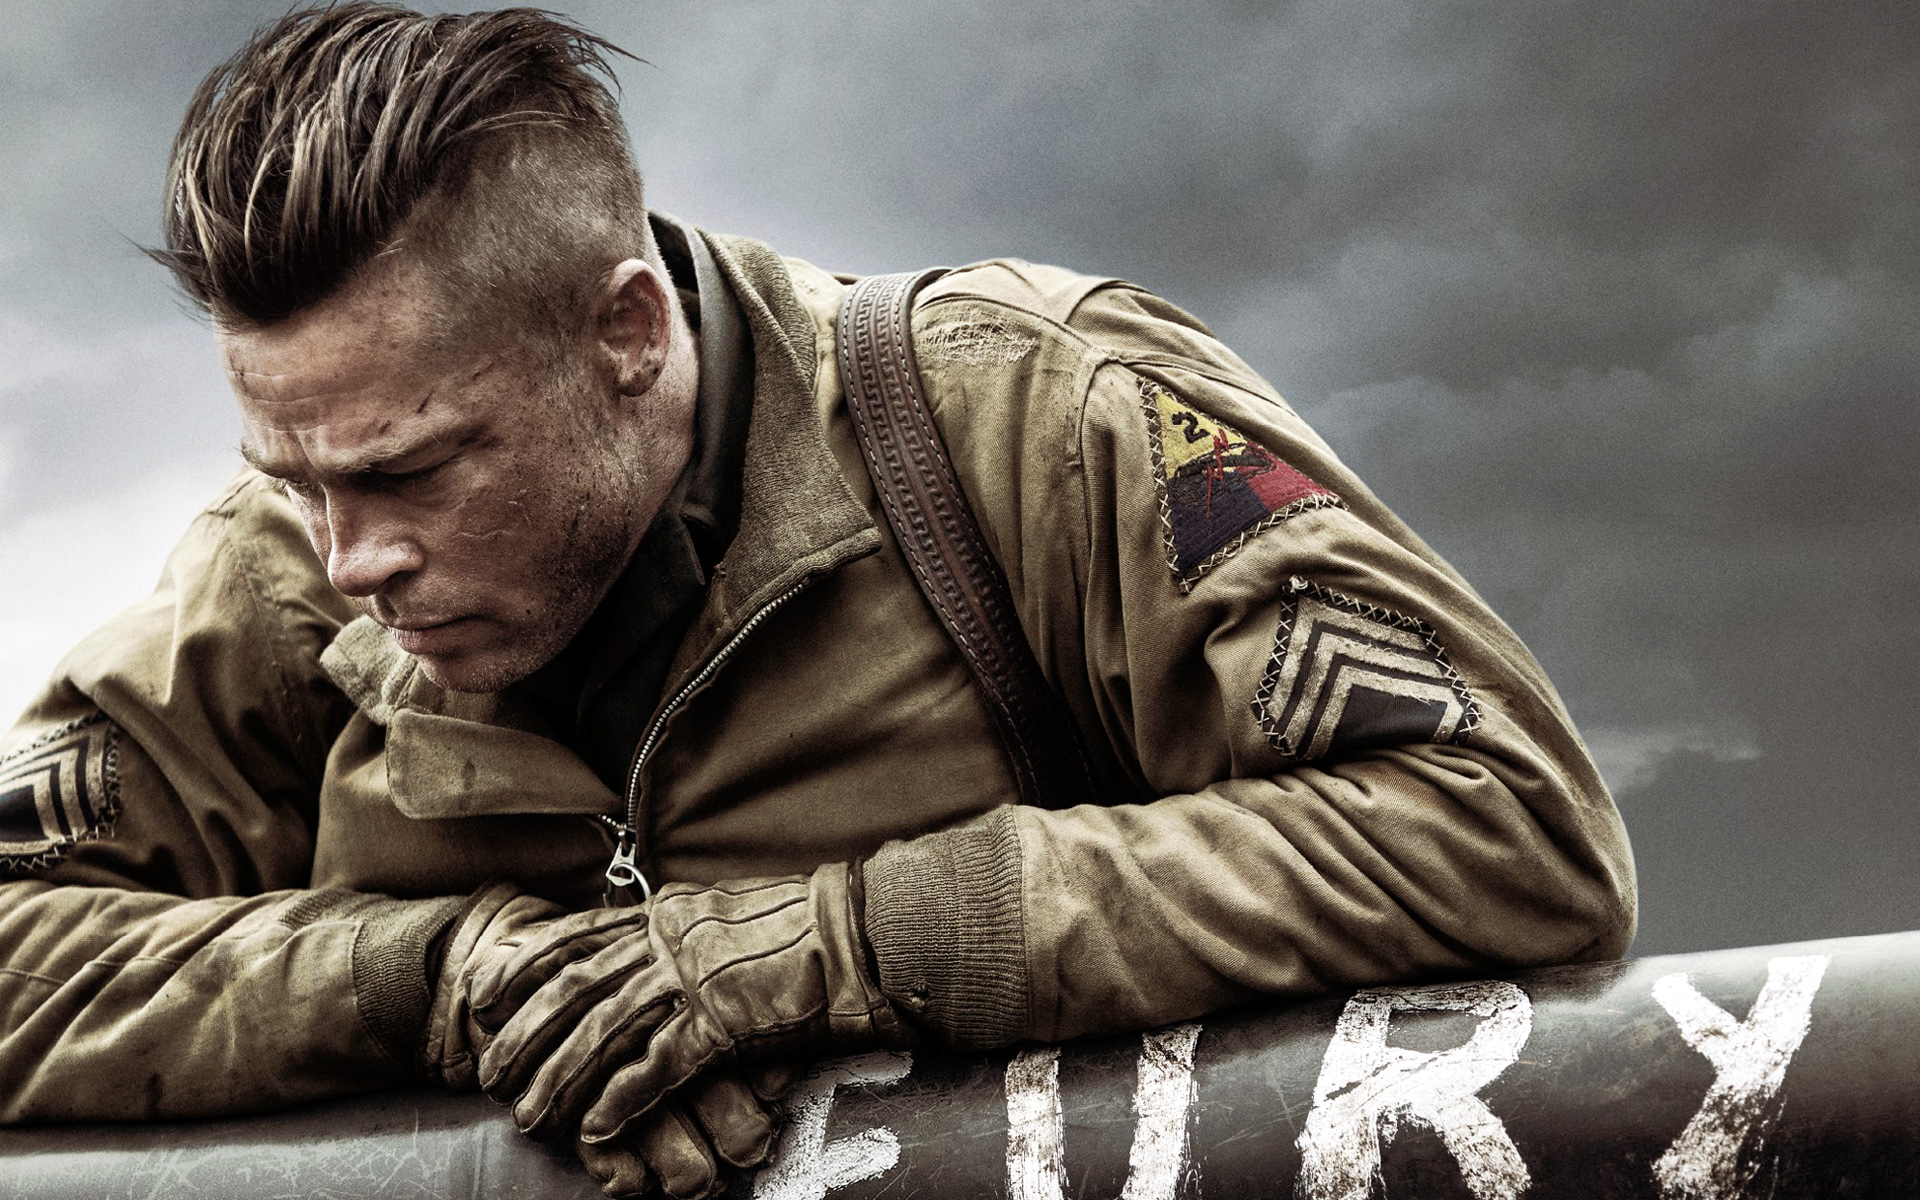 Brad Pitt in Fury 2802.33 Kb